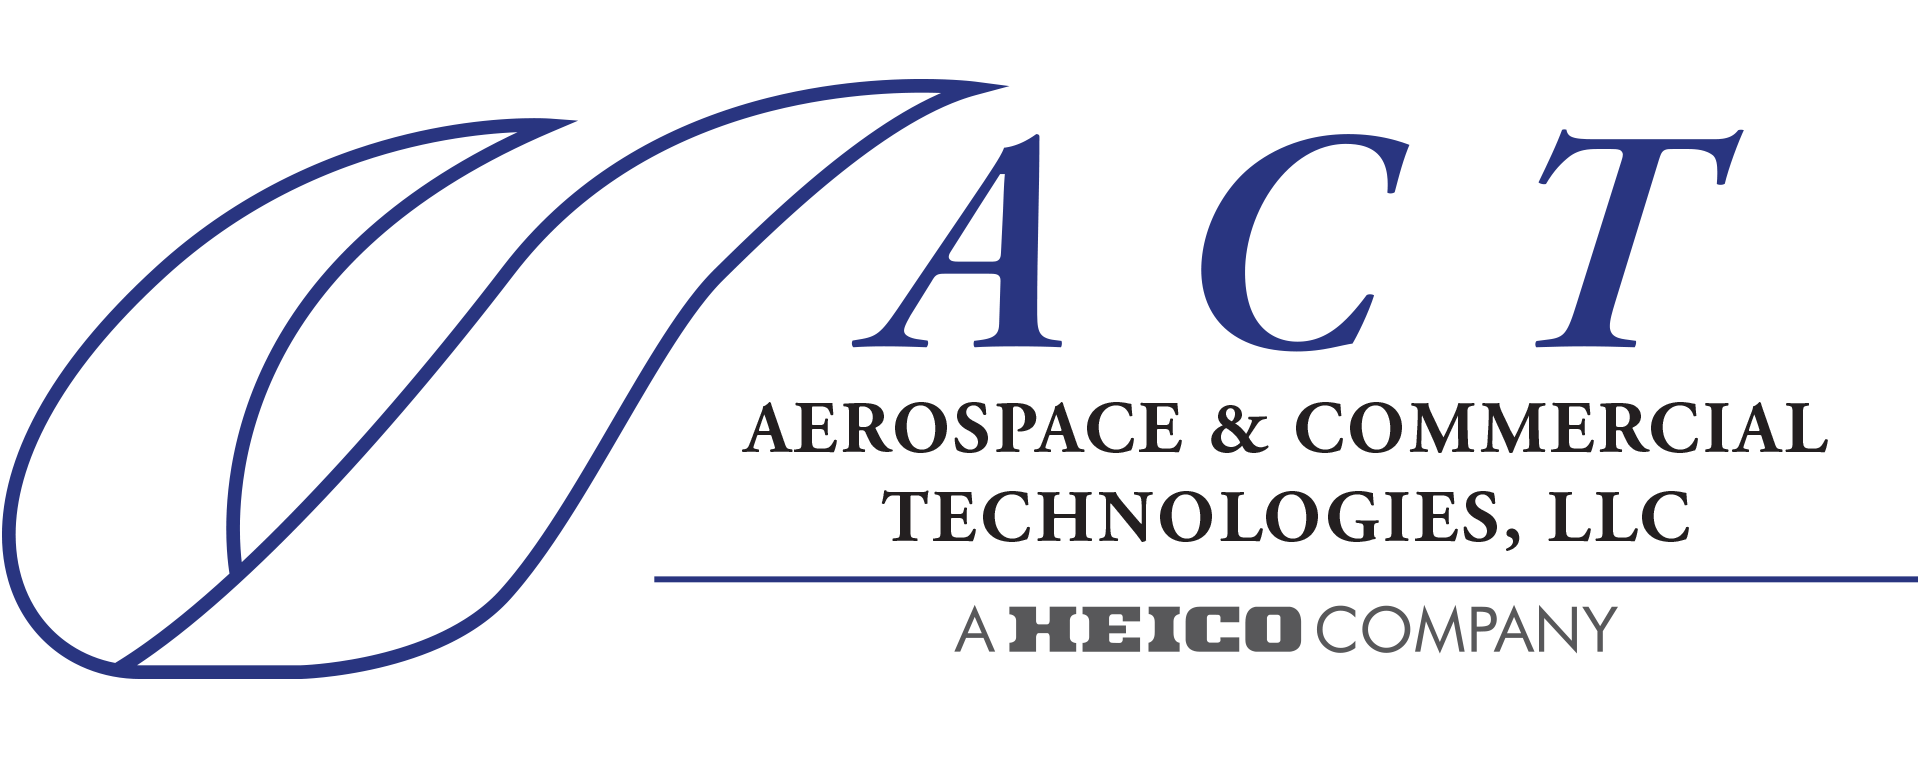 Aerospace & Commercial Technologies, LLC